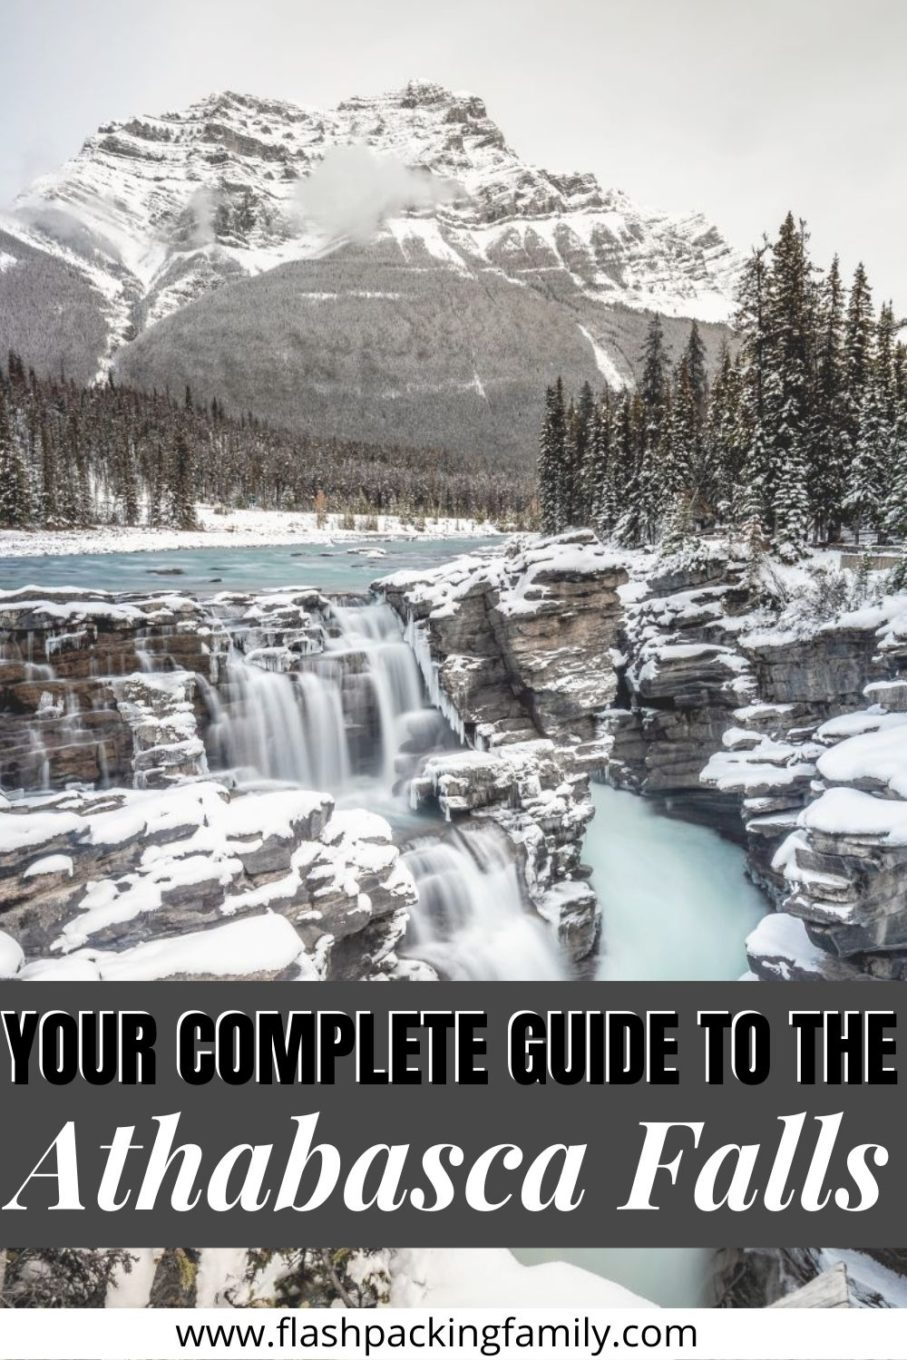 Your complete Guide to the Athabasca Falls